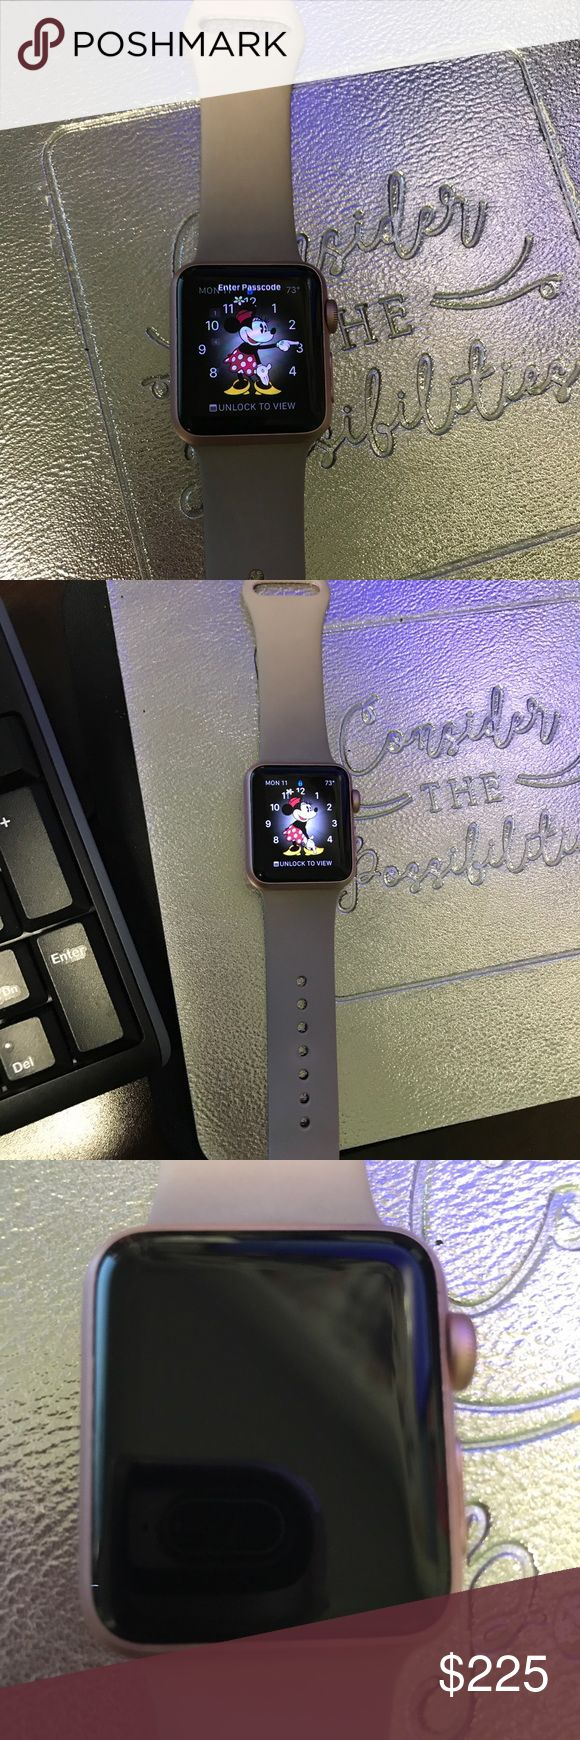 Apple Watch w/ used sm/md band and new md/lg band Apple Watch with used sm/md band and new md/lg band 38 mm comes with original box. Small band is worn. Watch is in pretty great used condition. Accessories Watches